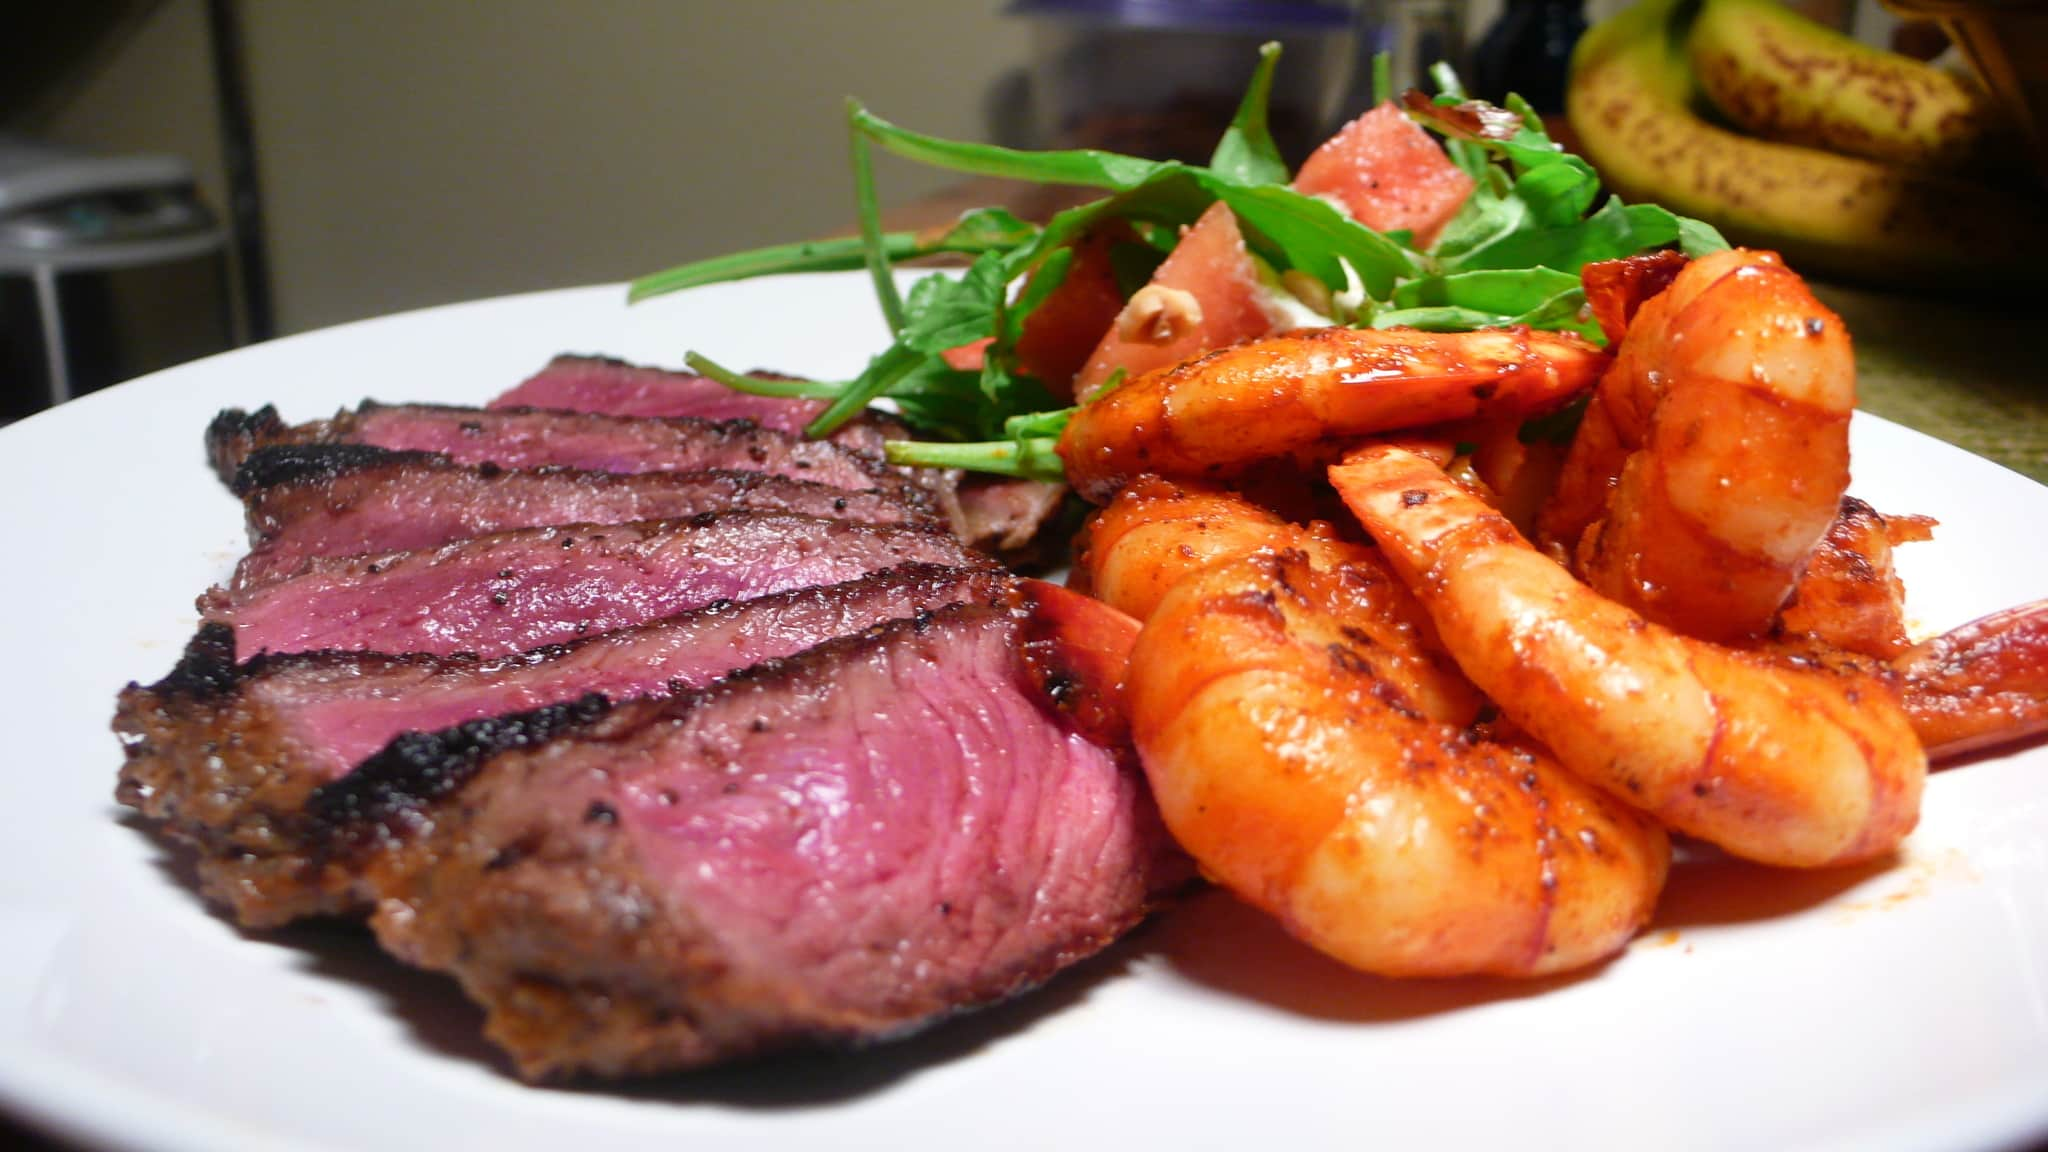 Susan's Dry Rubbed Steak & Shrimp with Watermelon Salad Quick Weeknight Meals Recipe Contest 2009: gallery image 1